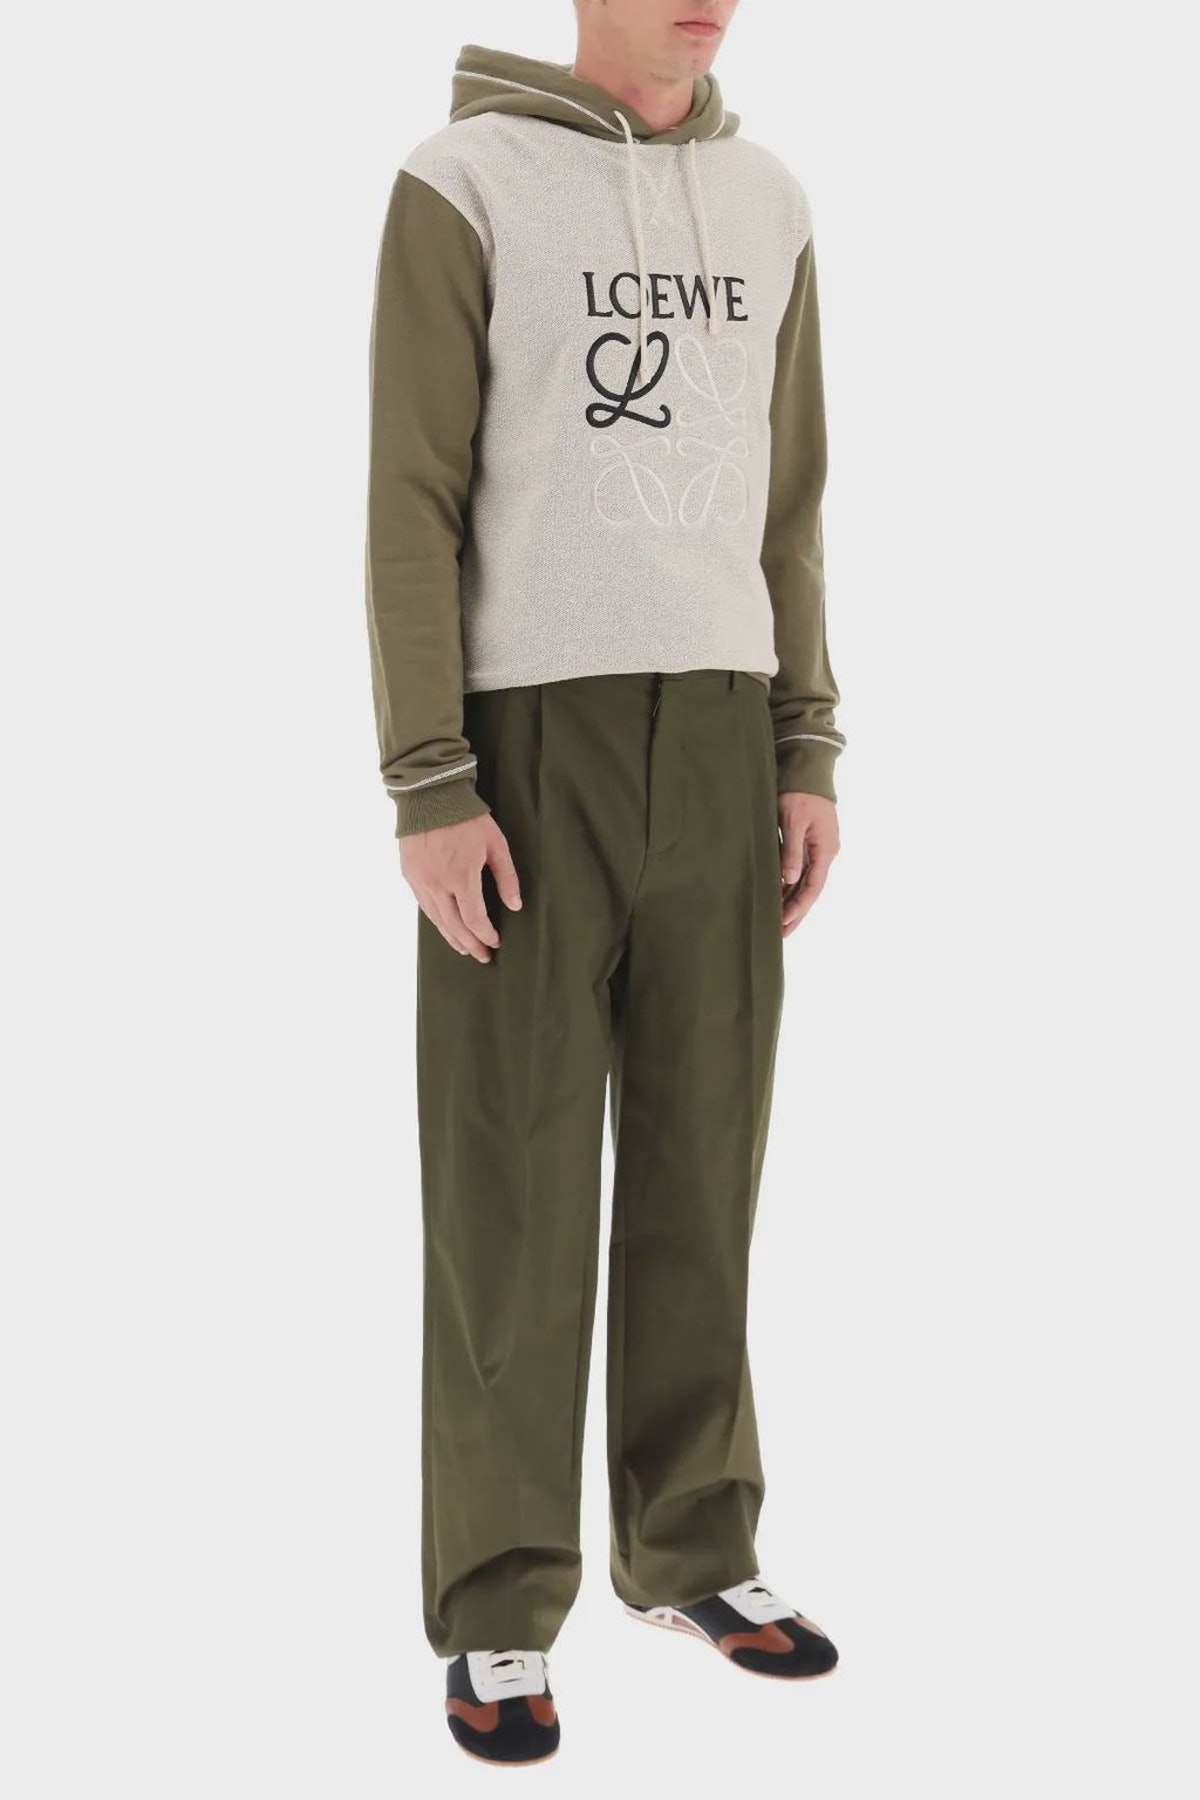 Loewe Chino Trousers Anagram Embroidery: additional image